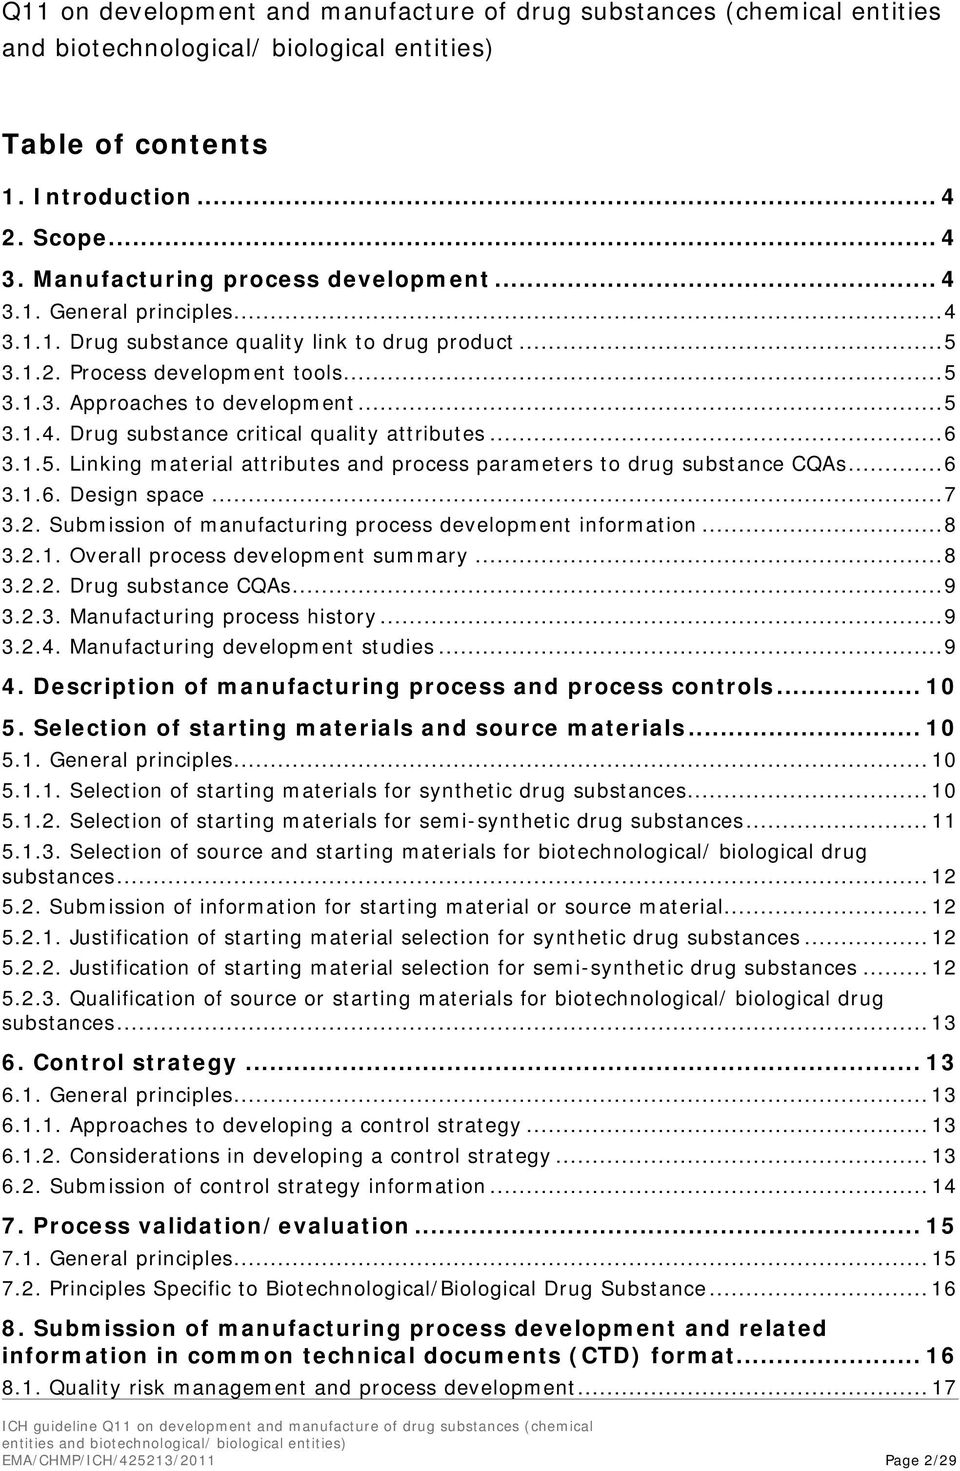 .. 6 3.1.5. Linking material attributes and process parameters to drug substance CQAs... 6 3.1.6. Design space... 7 3.2. Submission of manufacturing process development information... 8 3.2.1. Overall process development summary.